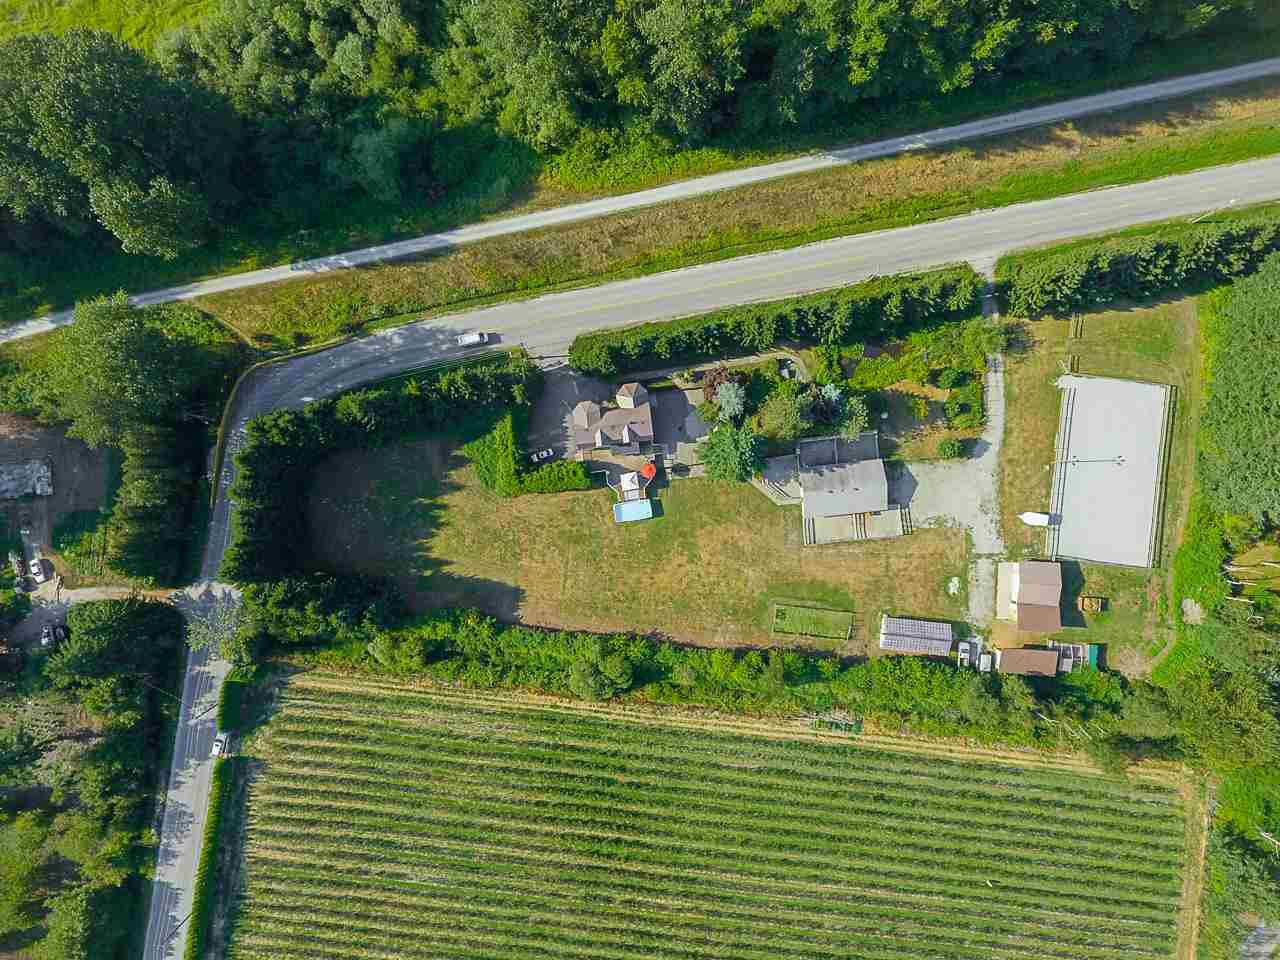 Photo 4: Photos: 17236 KENNEDY Road in Pitt Meadows: West Meadows House for sale : MLS®# R2395279